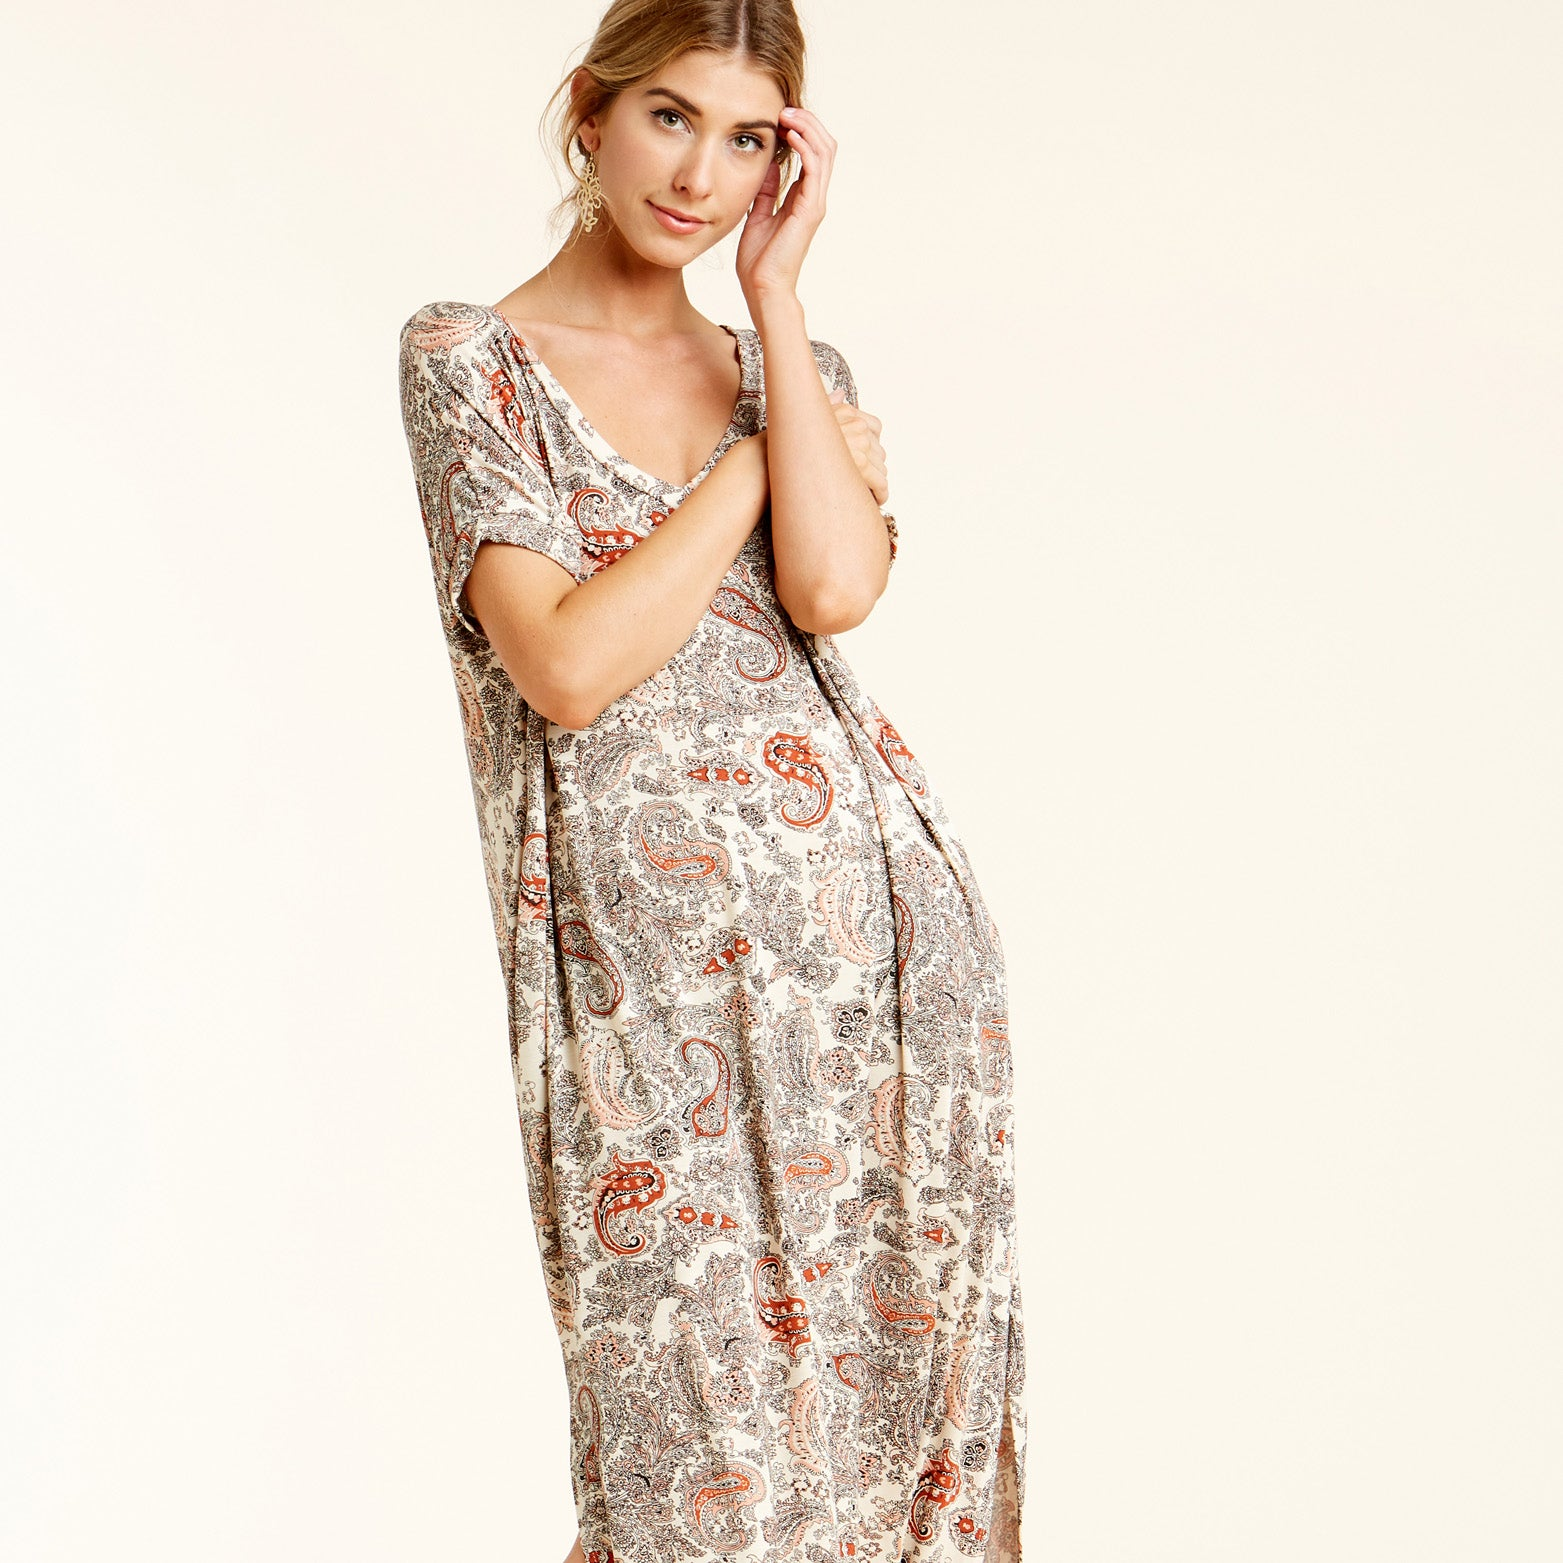 RL Paisley Retreat Maxi Dress - Love, Kuza